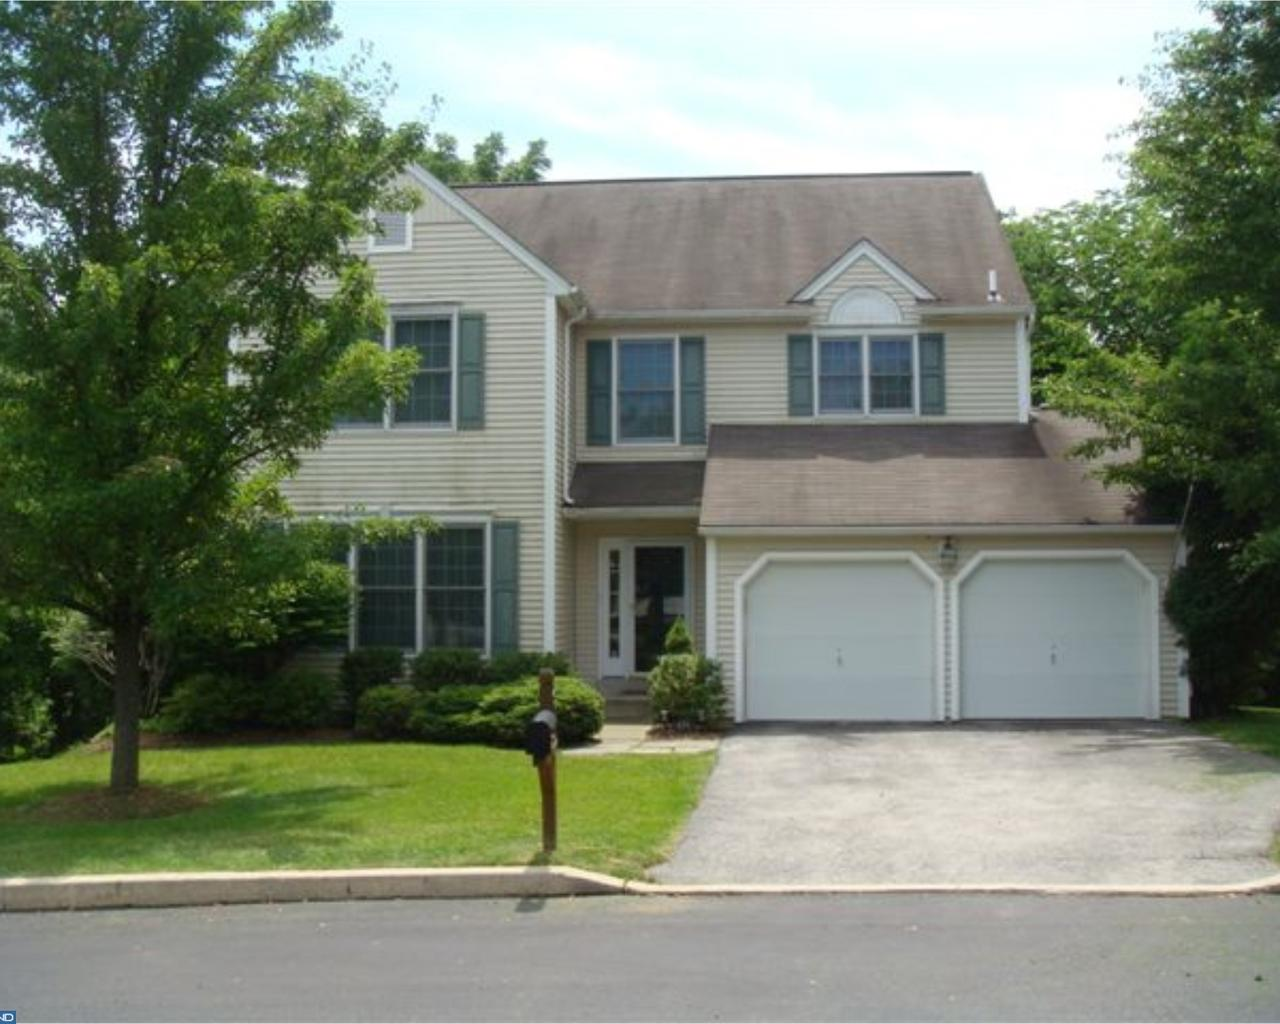 Property for sale at 455 CARPENTERS COVE LN, Downingtown,  PA 19335